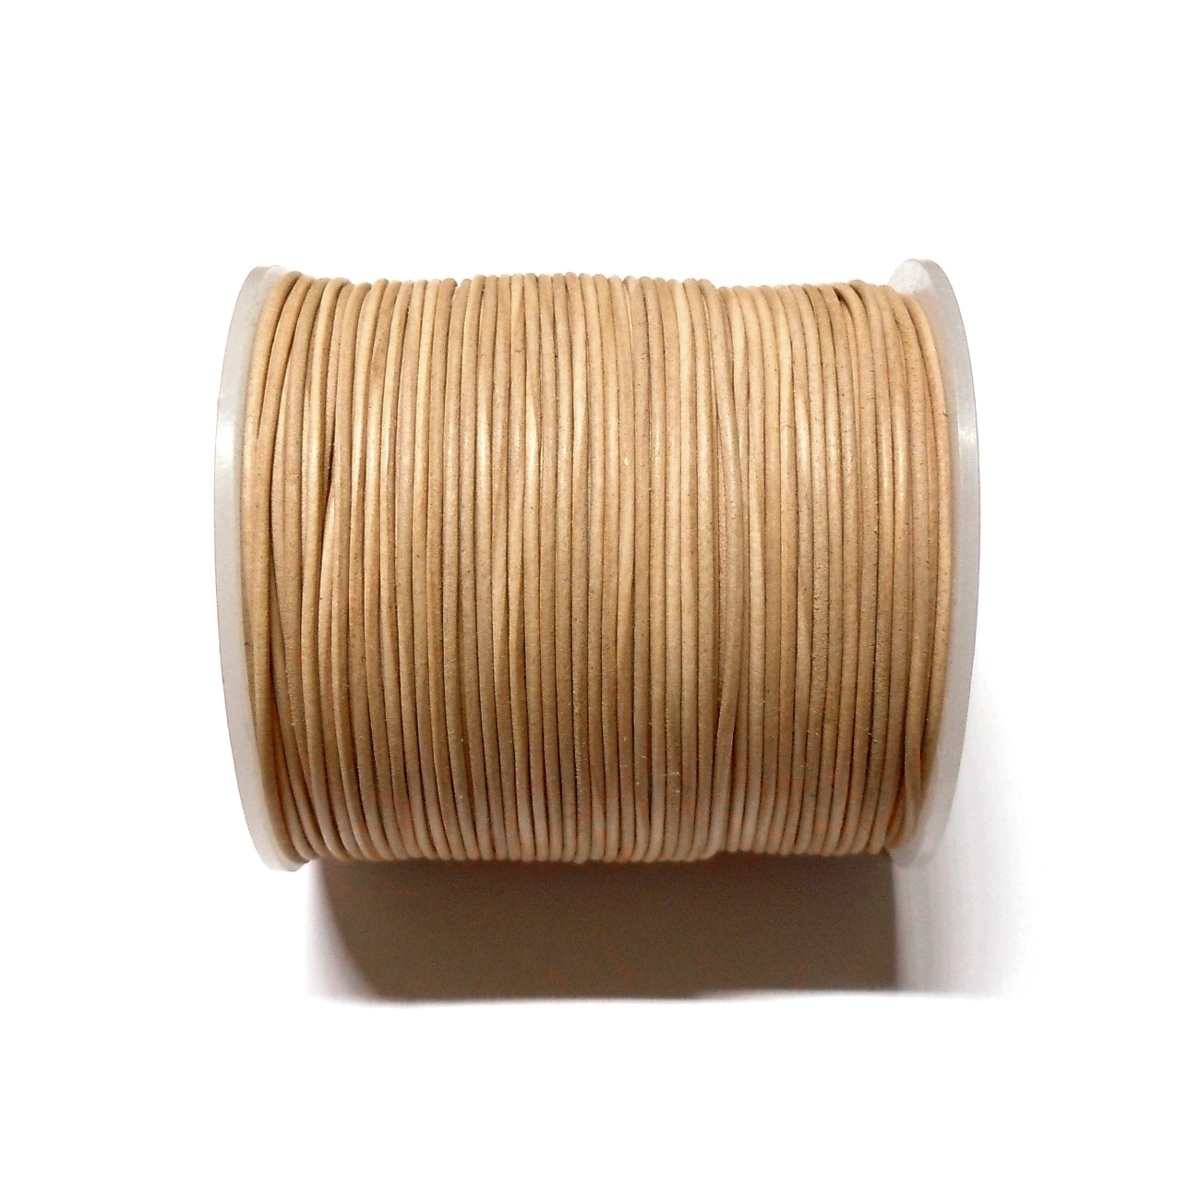 Leather Cord 1mm - Natural 101